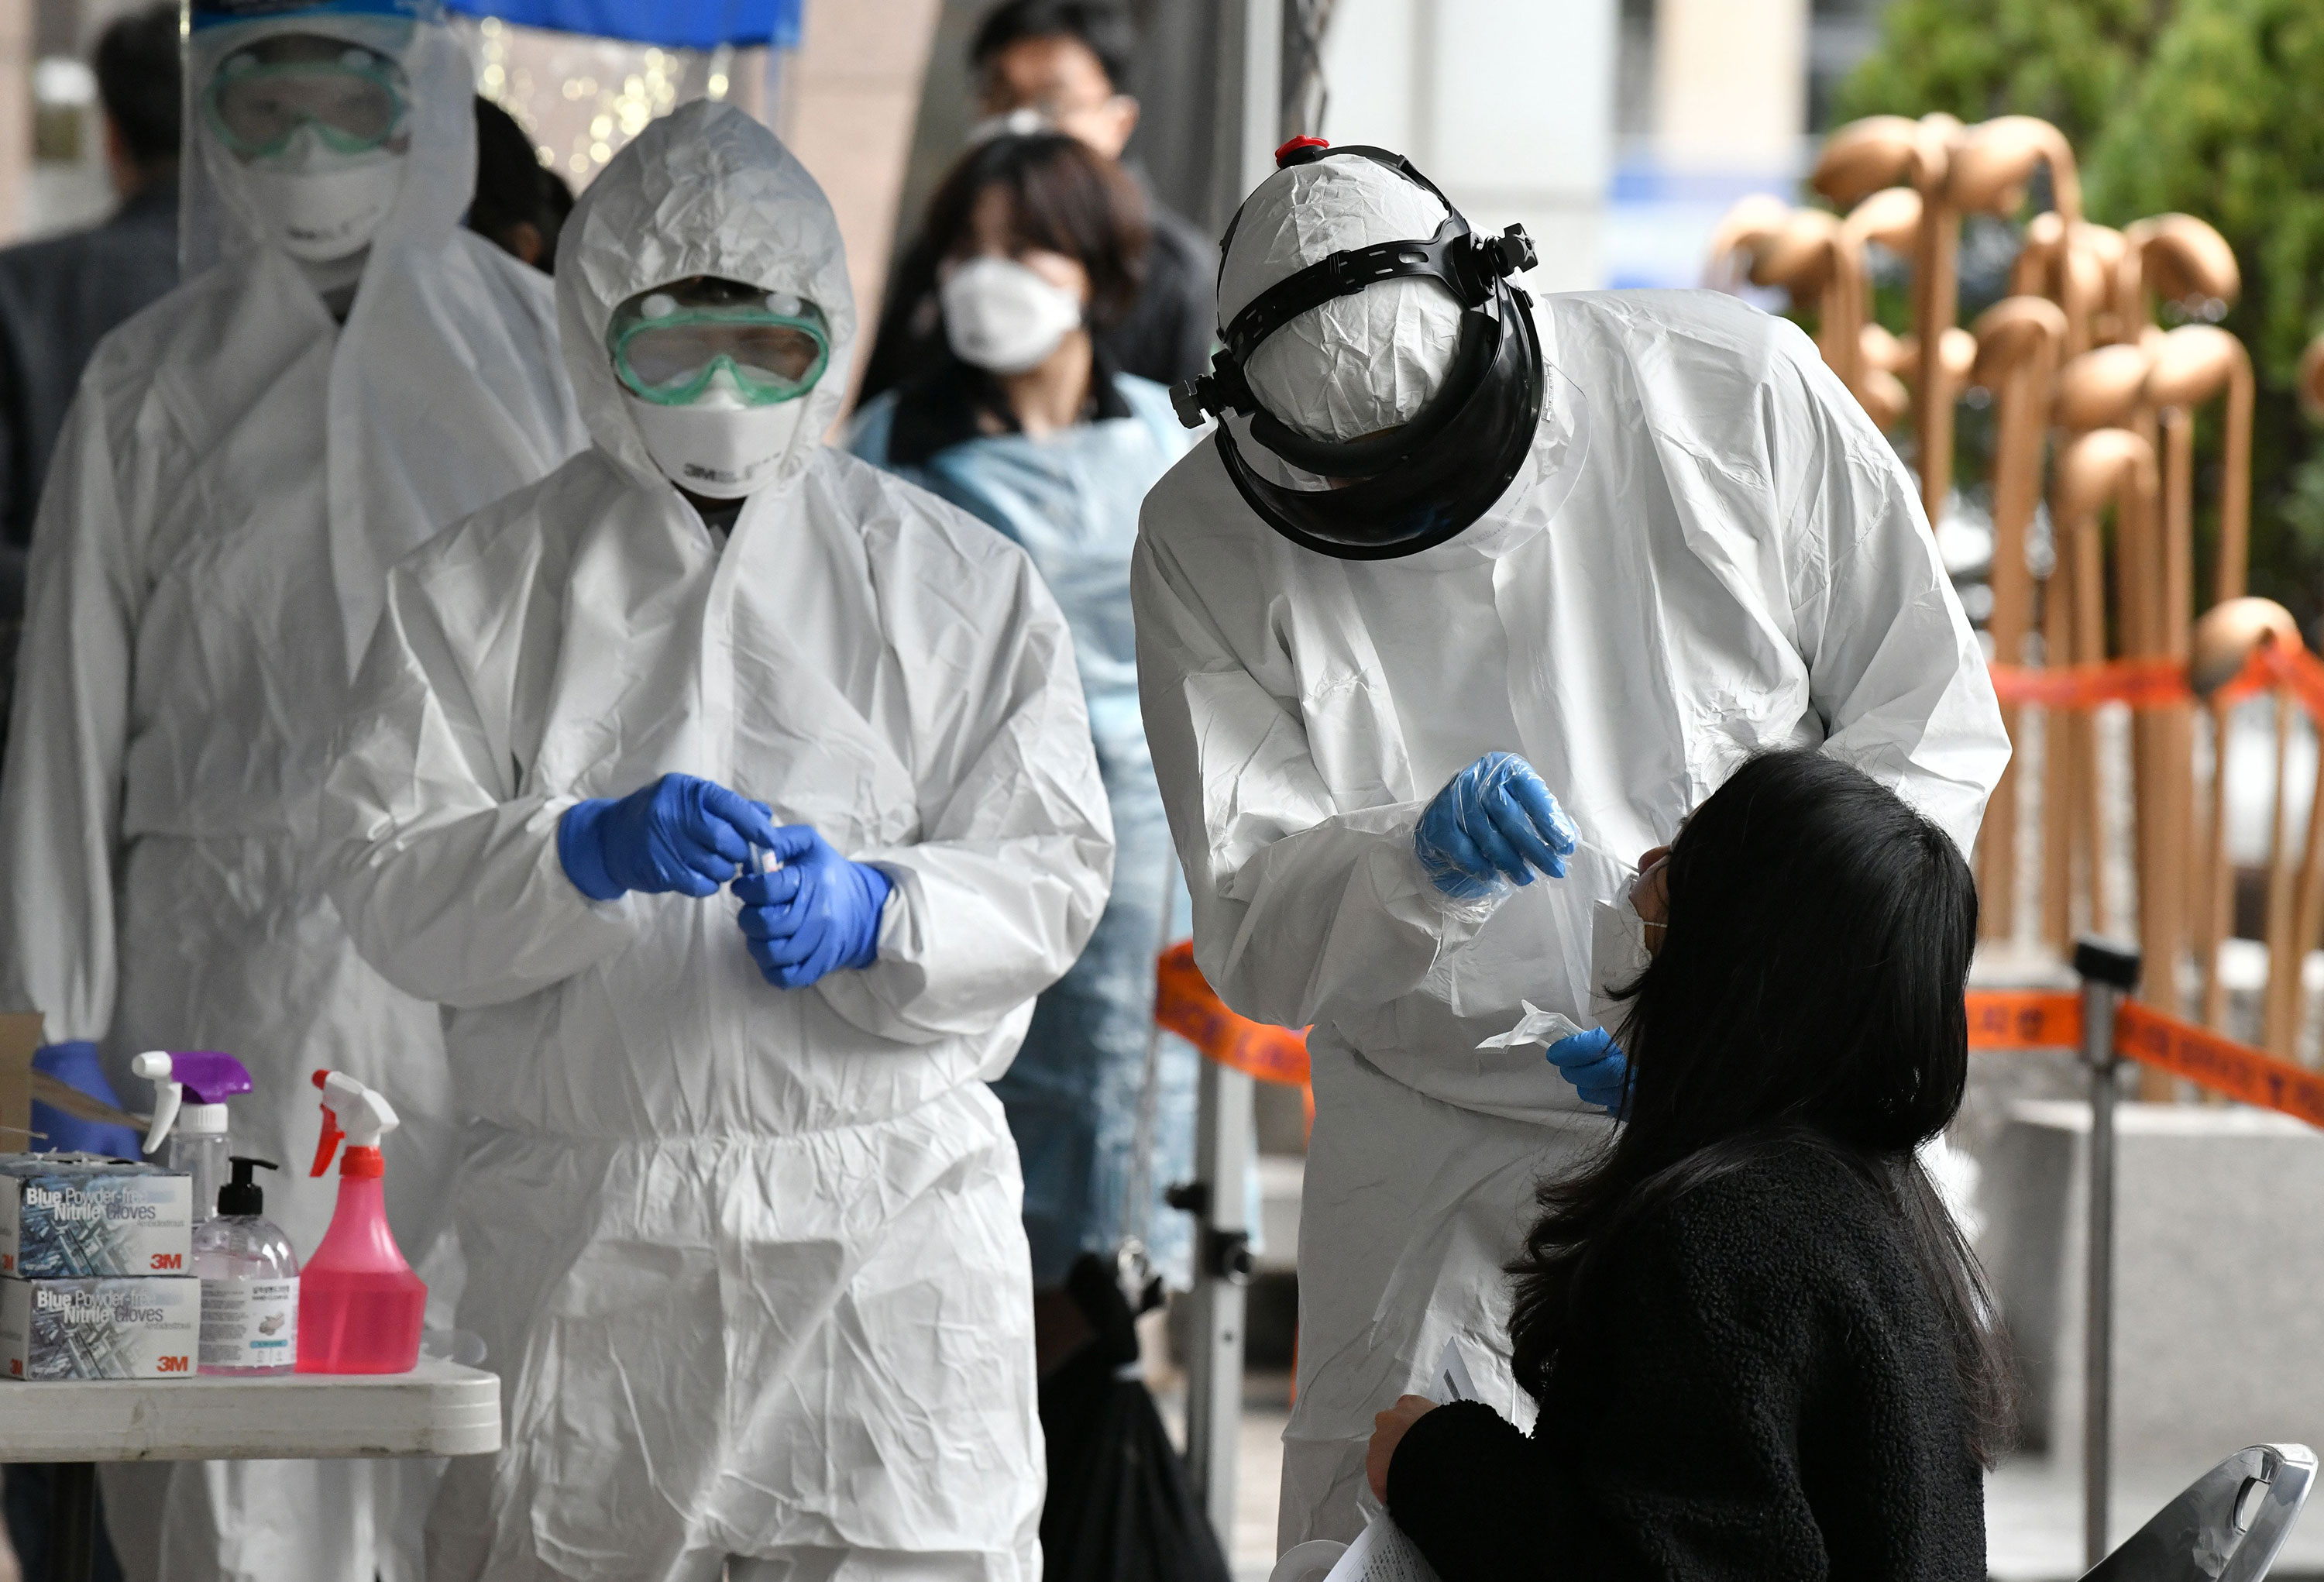 Medical staff take samples from workers at a building where multiple people were confirmed to have coronavirus in Seoul, South Korea on March 10.